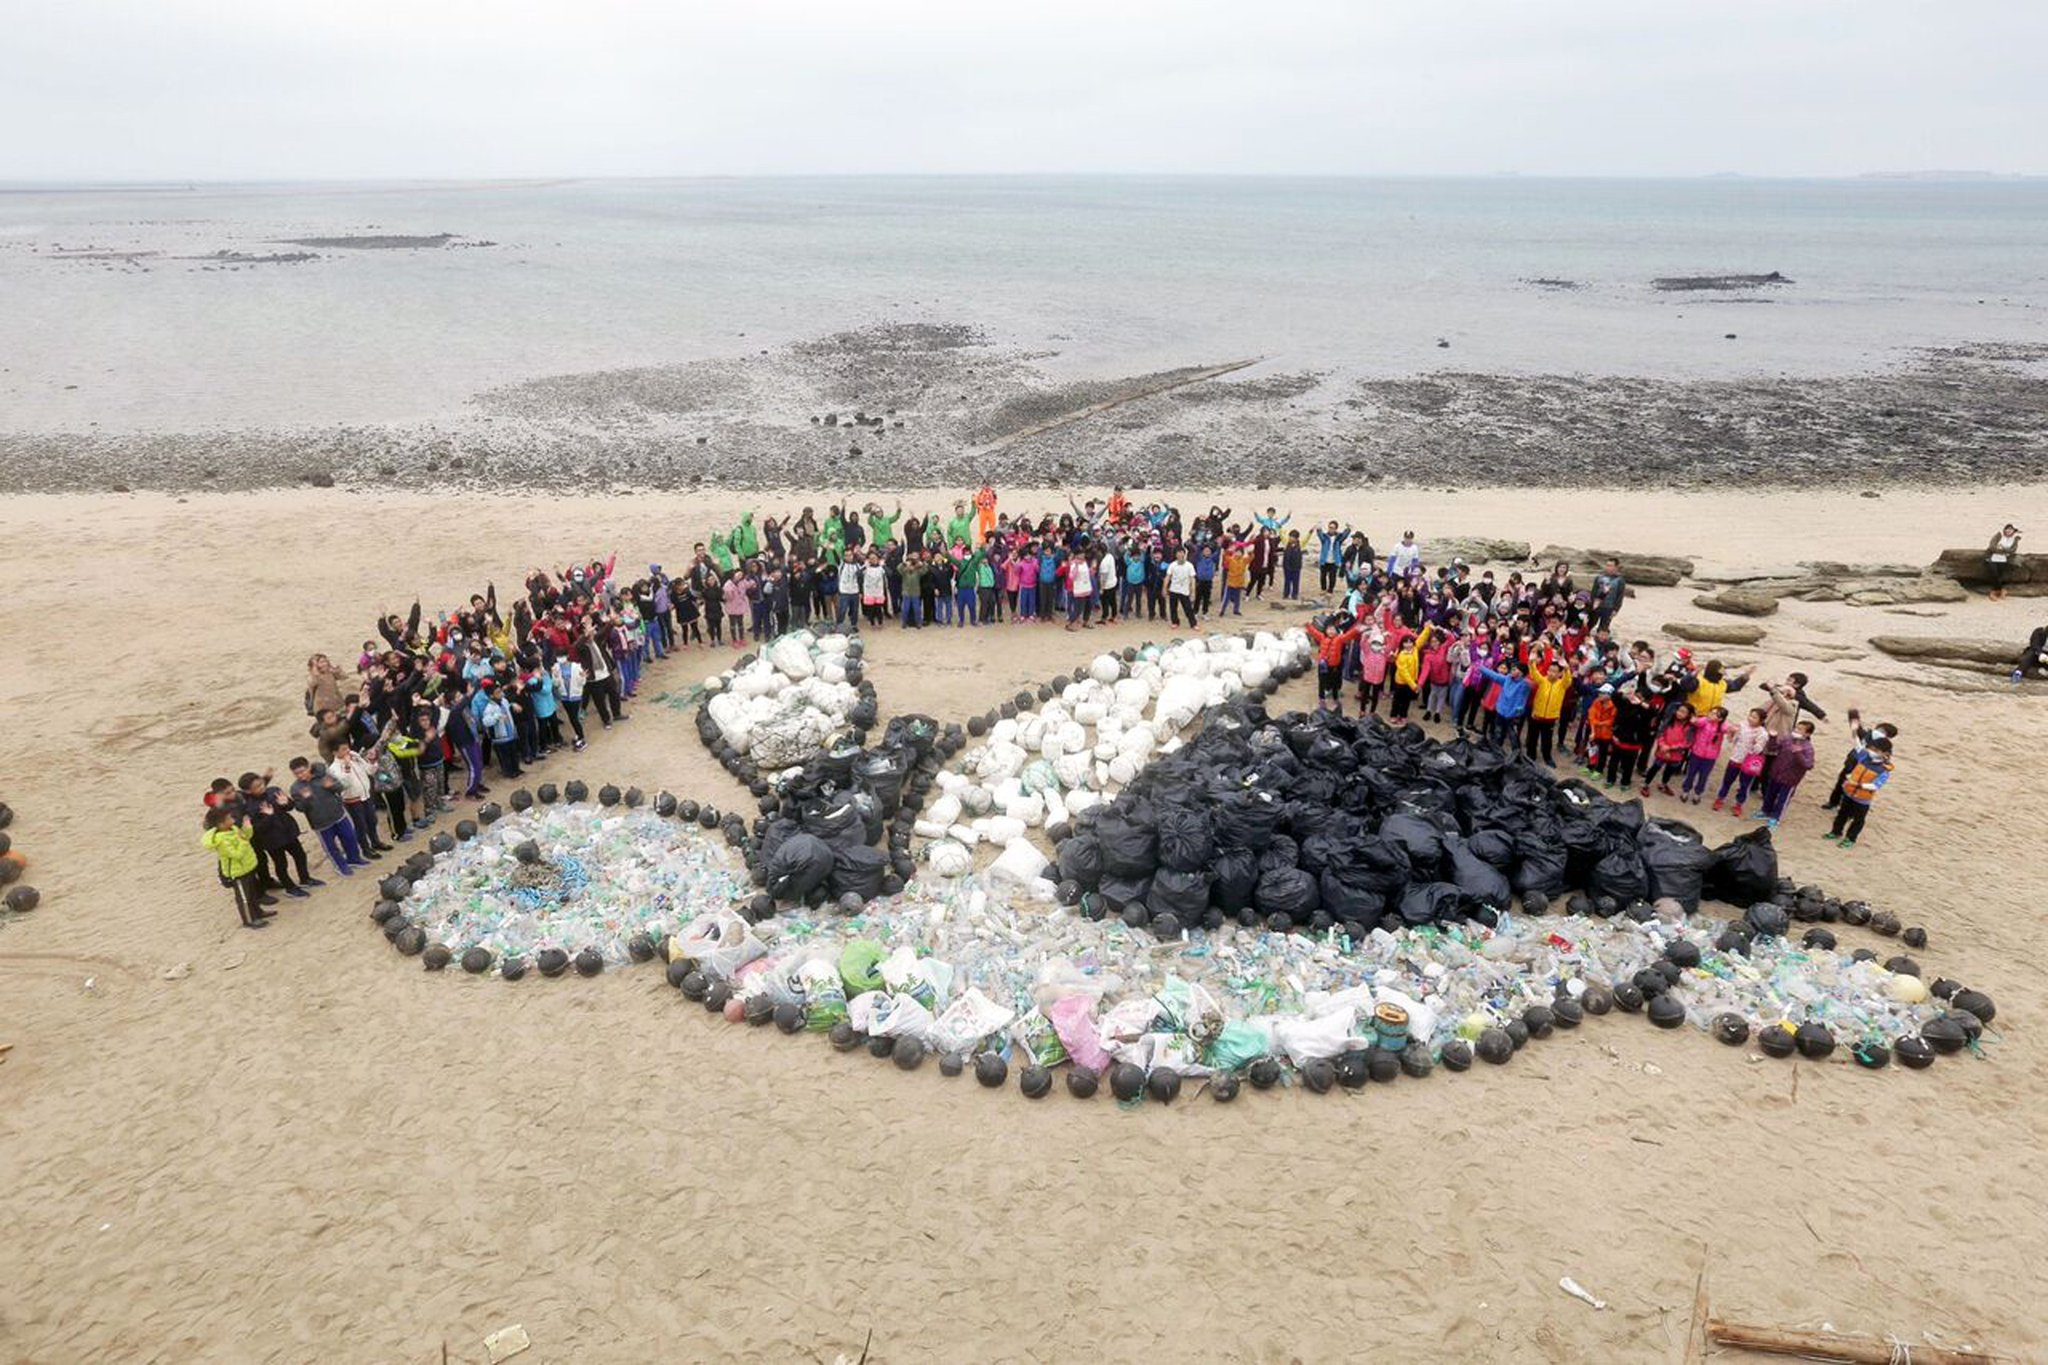 Guess how many plastic bottles were found during this beach cleanup in Taiwan? https://t.co/DaomyHPu3Z https://t.co/Sek2ba3SYh